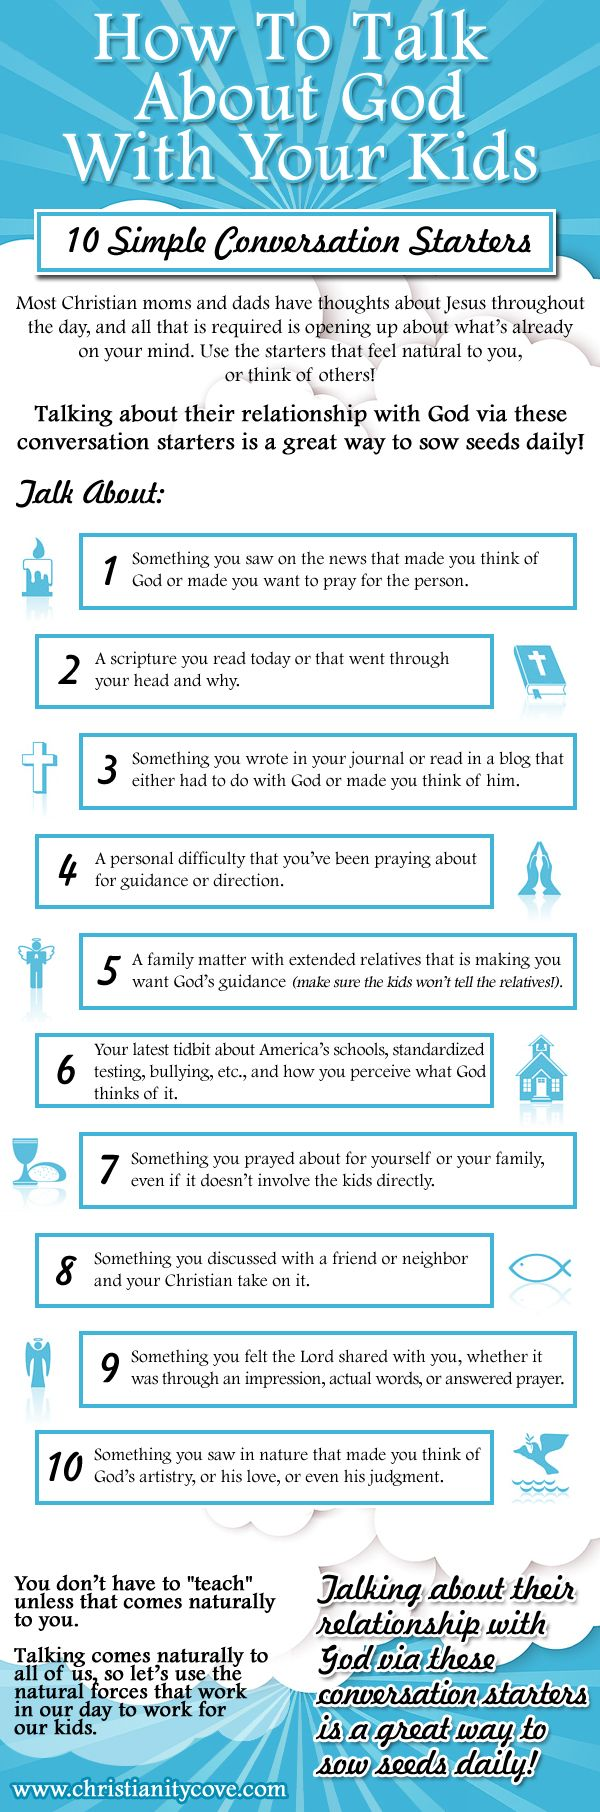 How To Talk About God With Your Kids – 10 Simple Conversation Starters. Talking about their relationship with God via these conversation starters is a great way to sow seeds daily!